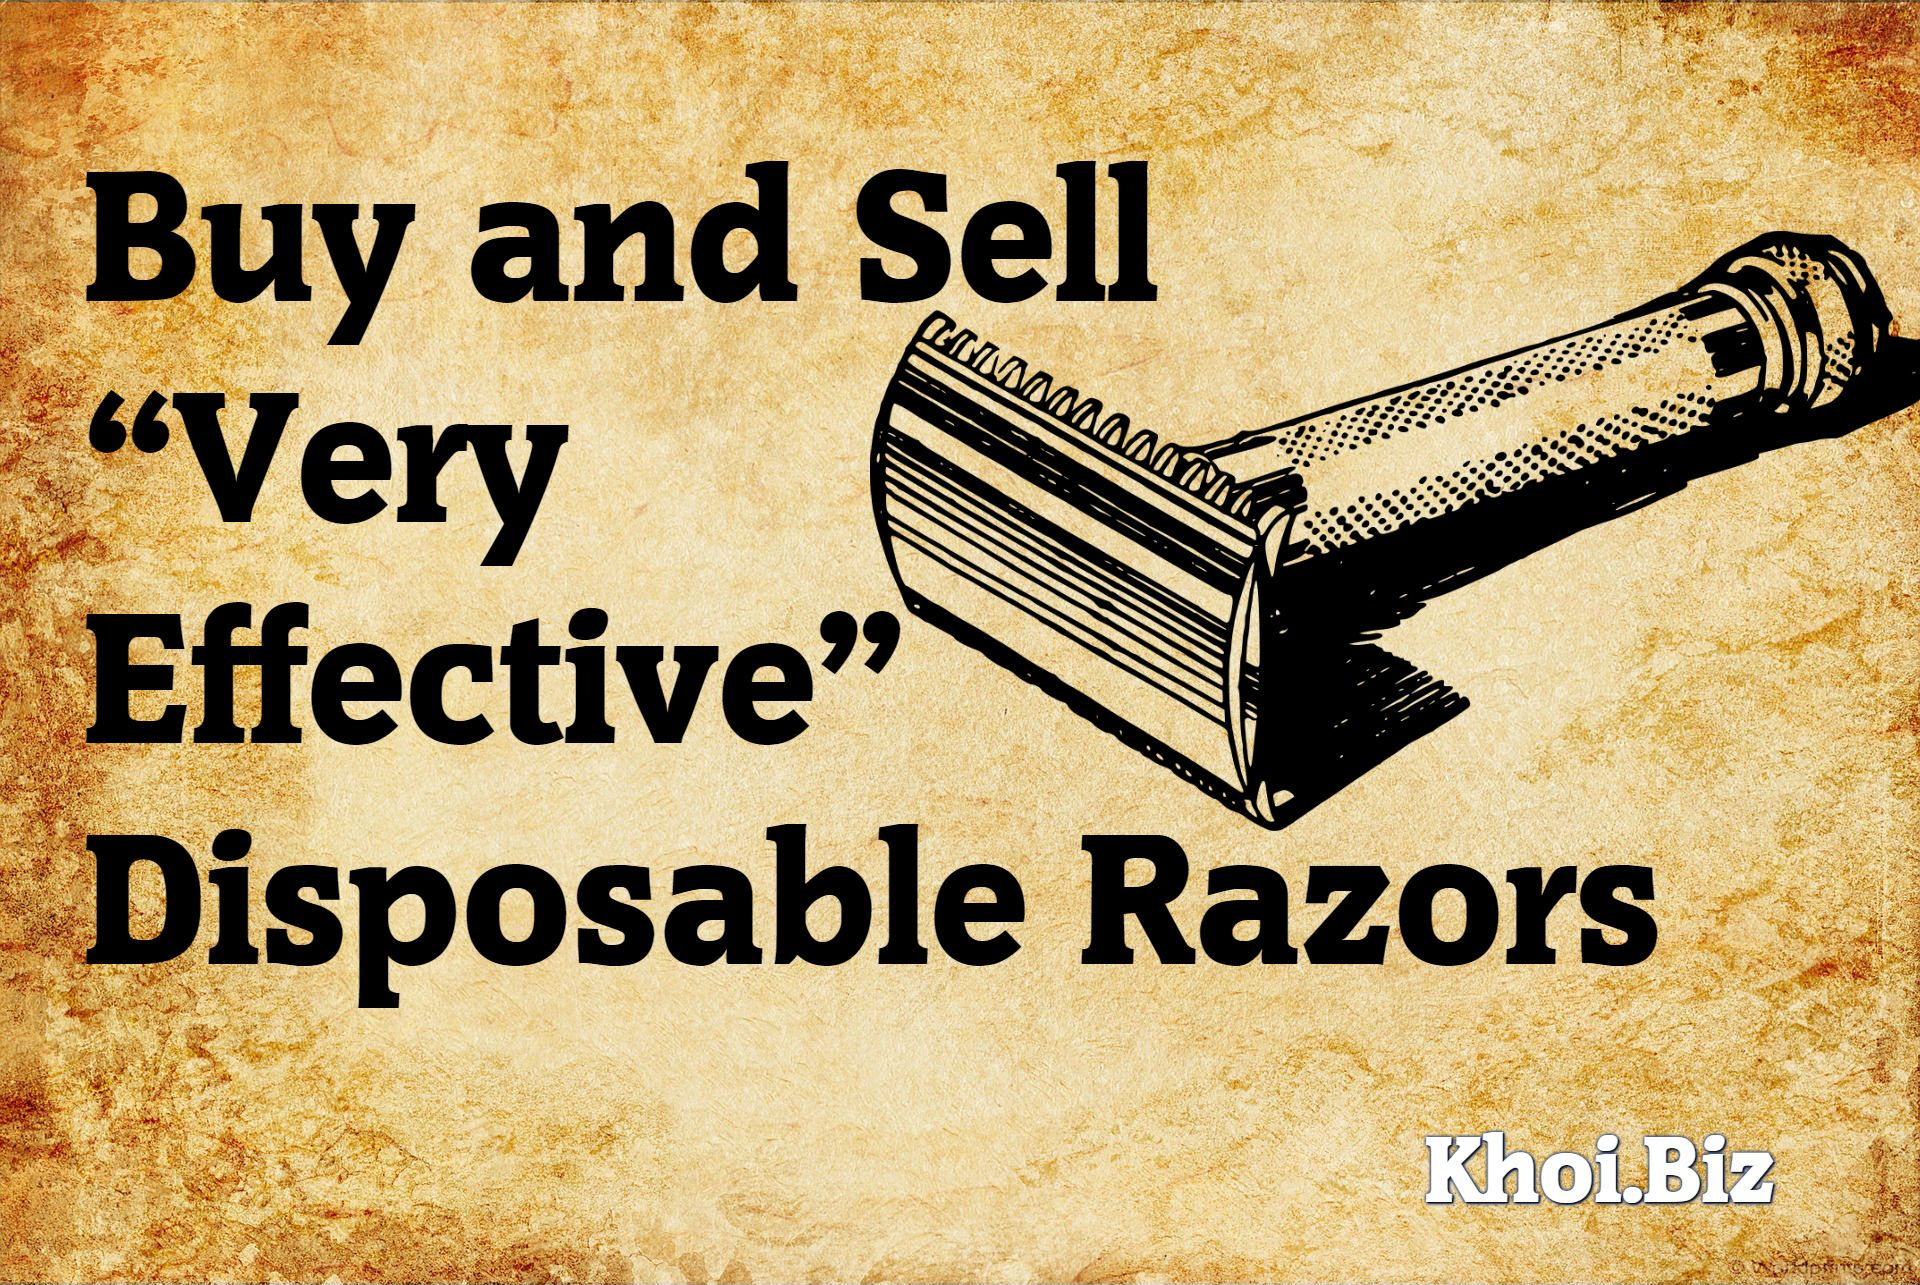 Buy and sell very effective disposable razors